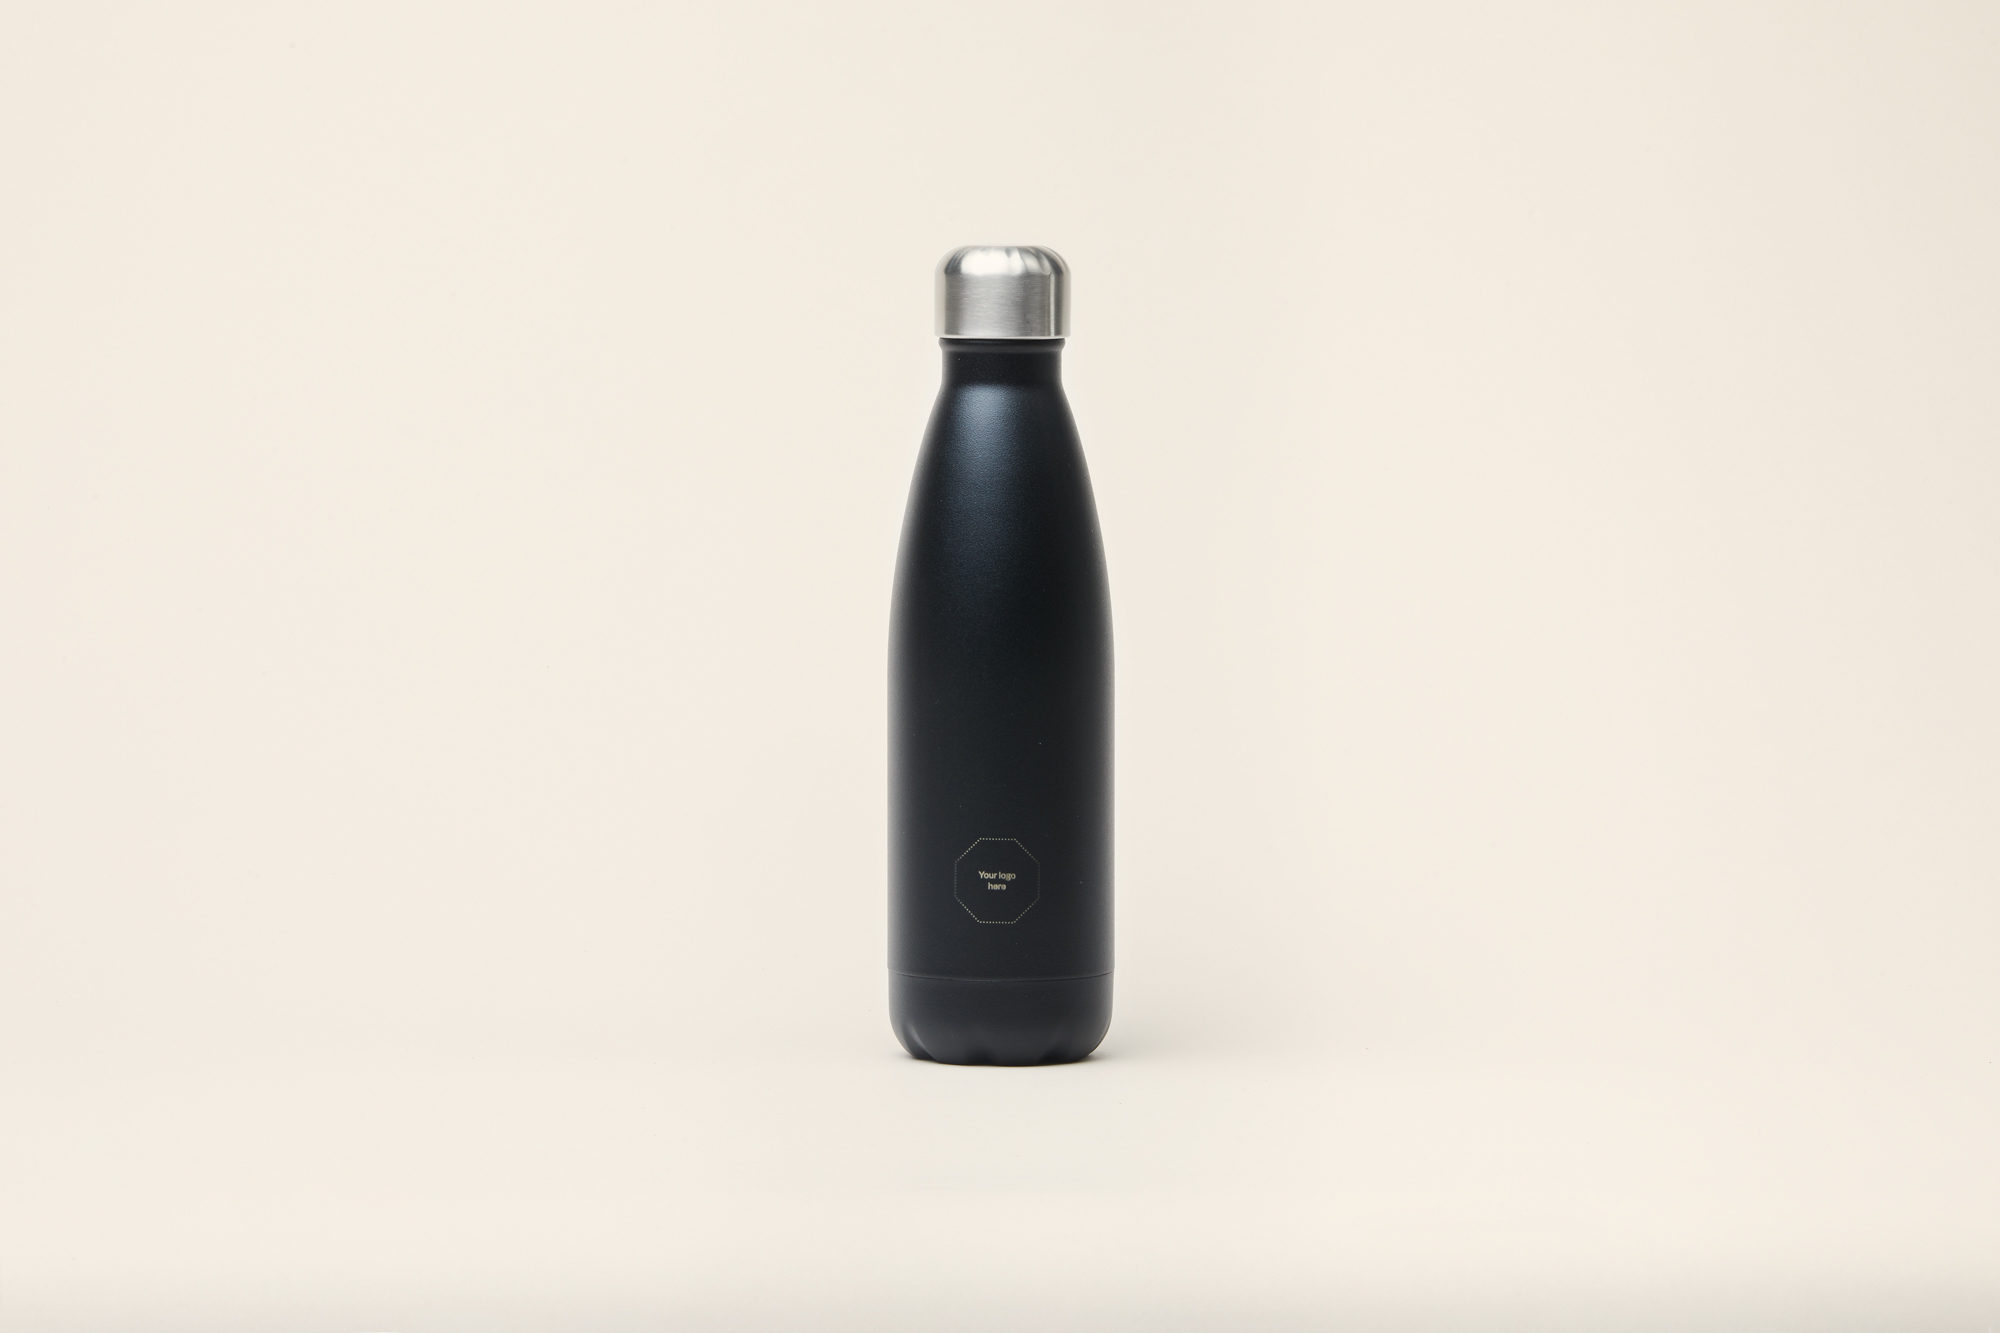 Merchery customized water bottle stainless steel 0.5L insulated sustainable promotional product black